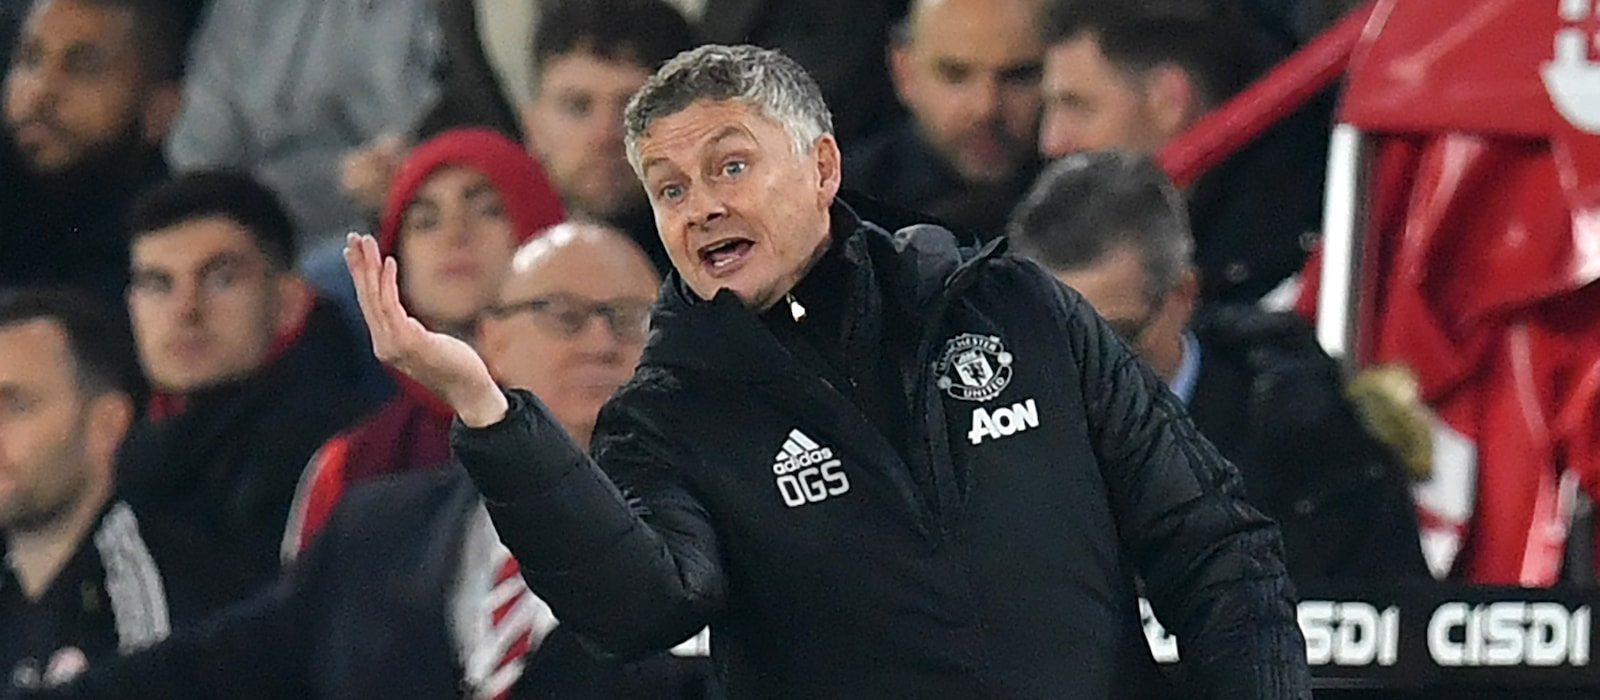 Why is Ole Gunnar Solskjaer still manager of Manchester United?